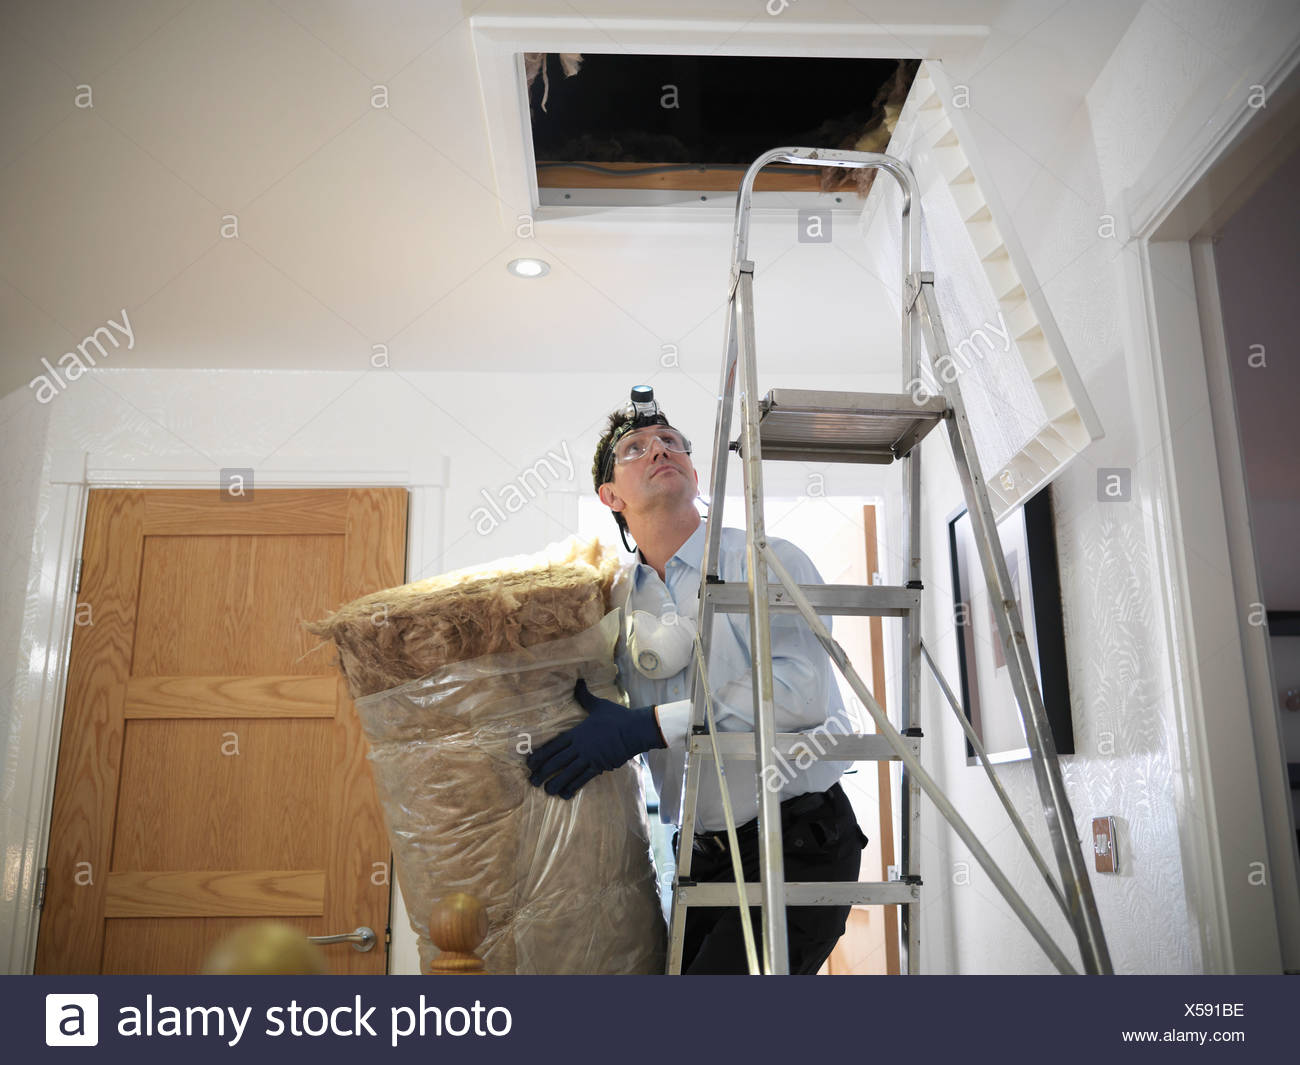 Worker carrying insulation to attic - Stock Image